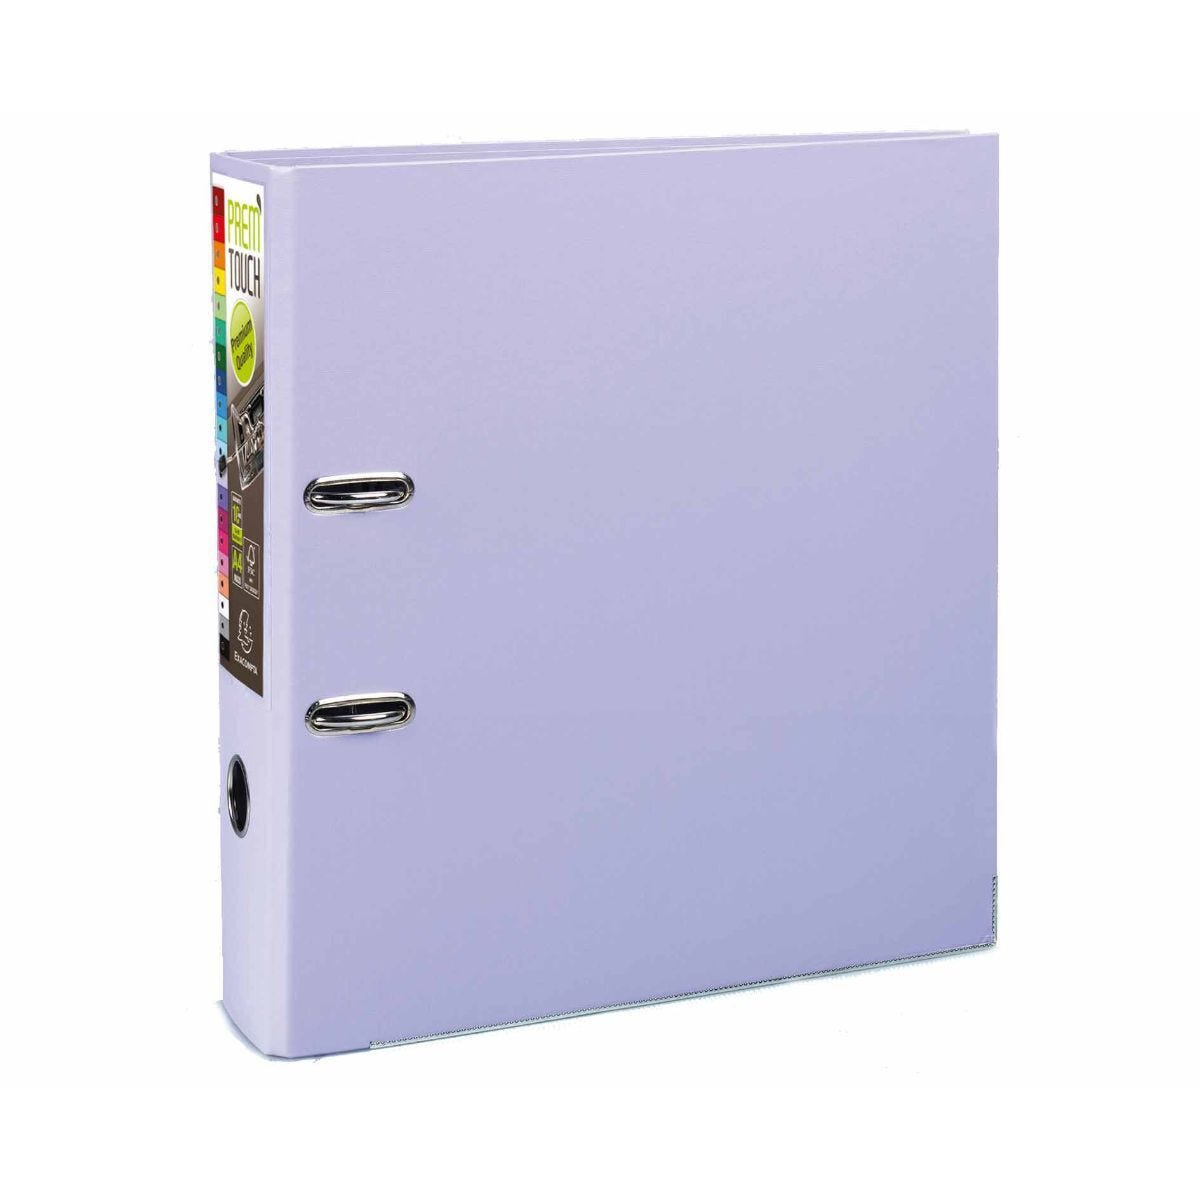 Exacompta PremTouch Lever Arch File A4 Plus Pack of 10 Lilac